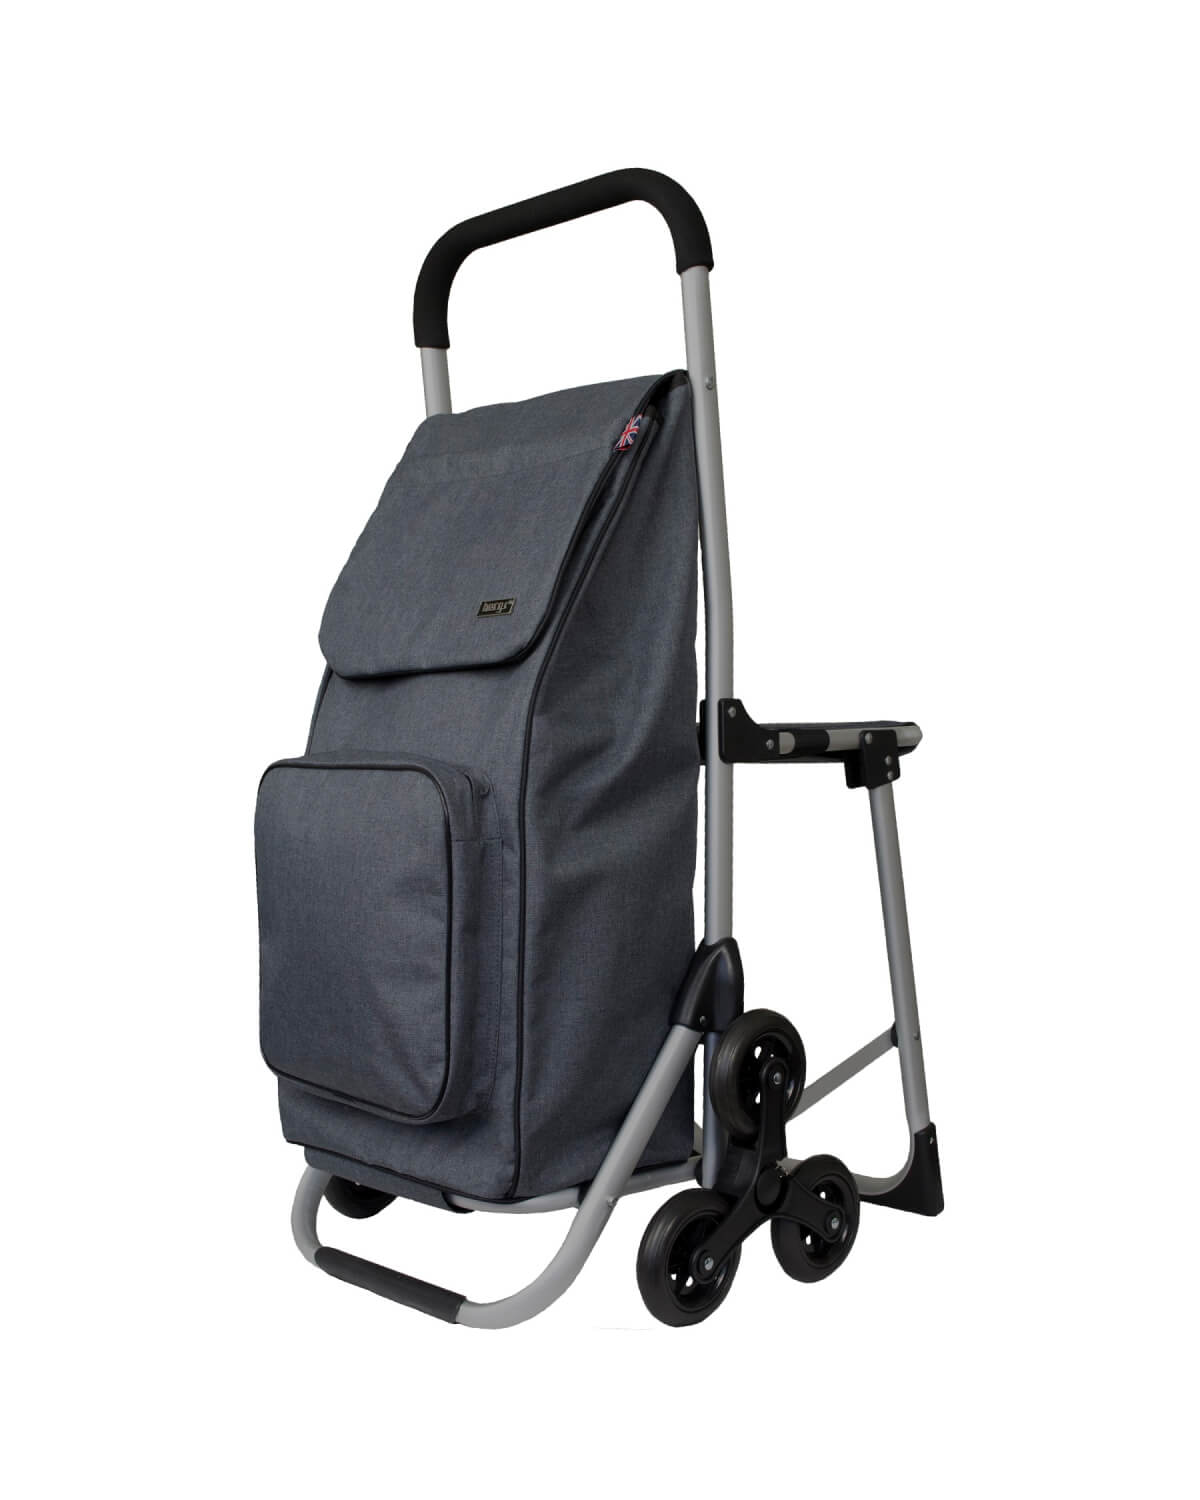 BergsCaddie Seat Trolley with 3 Wheels for Climbing Stairs Grey